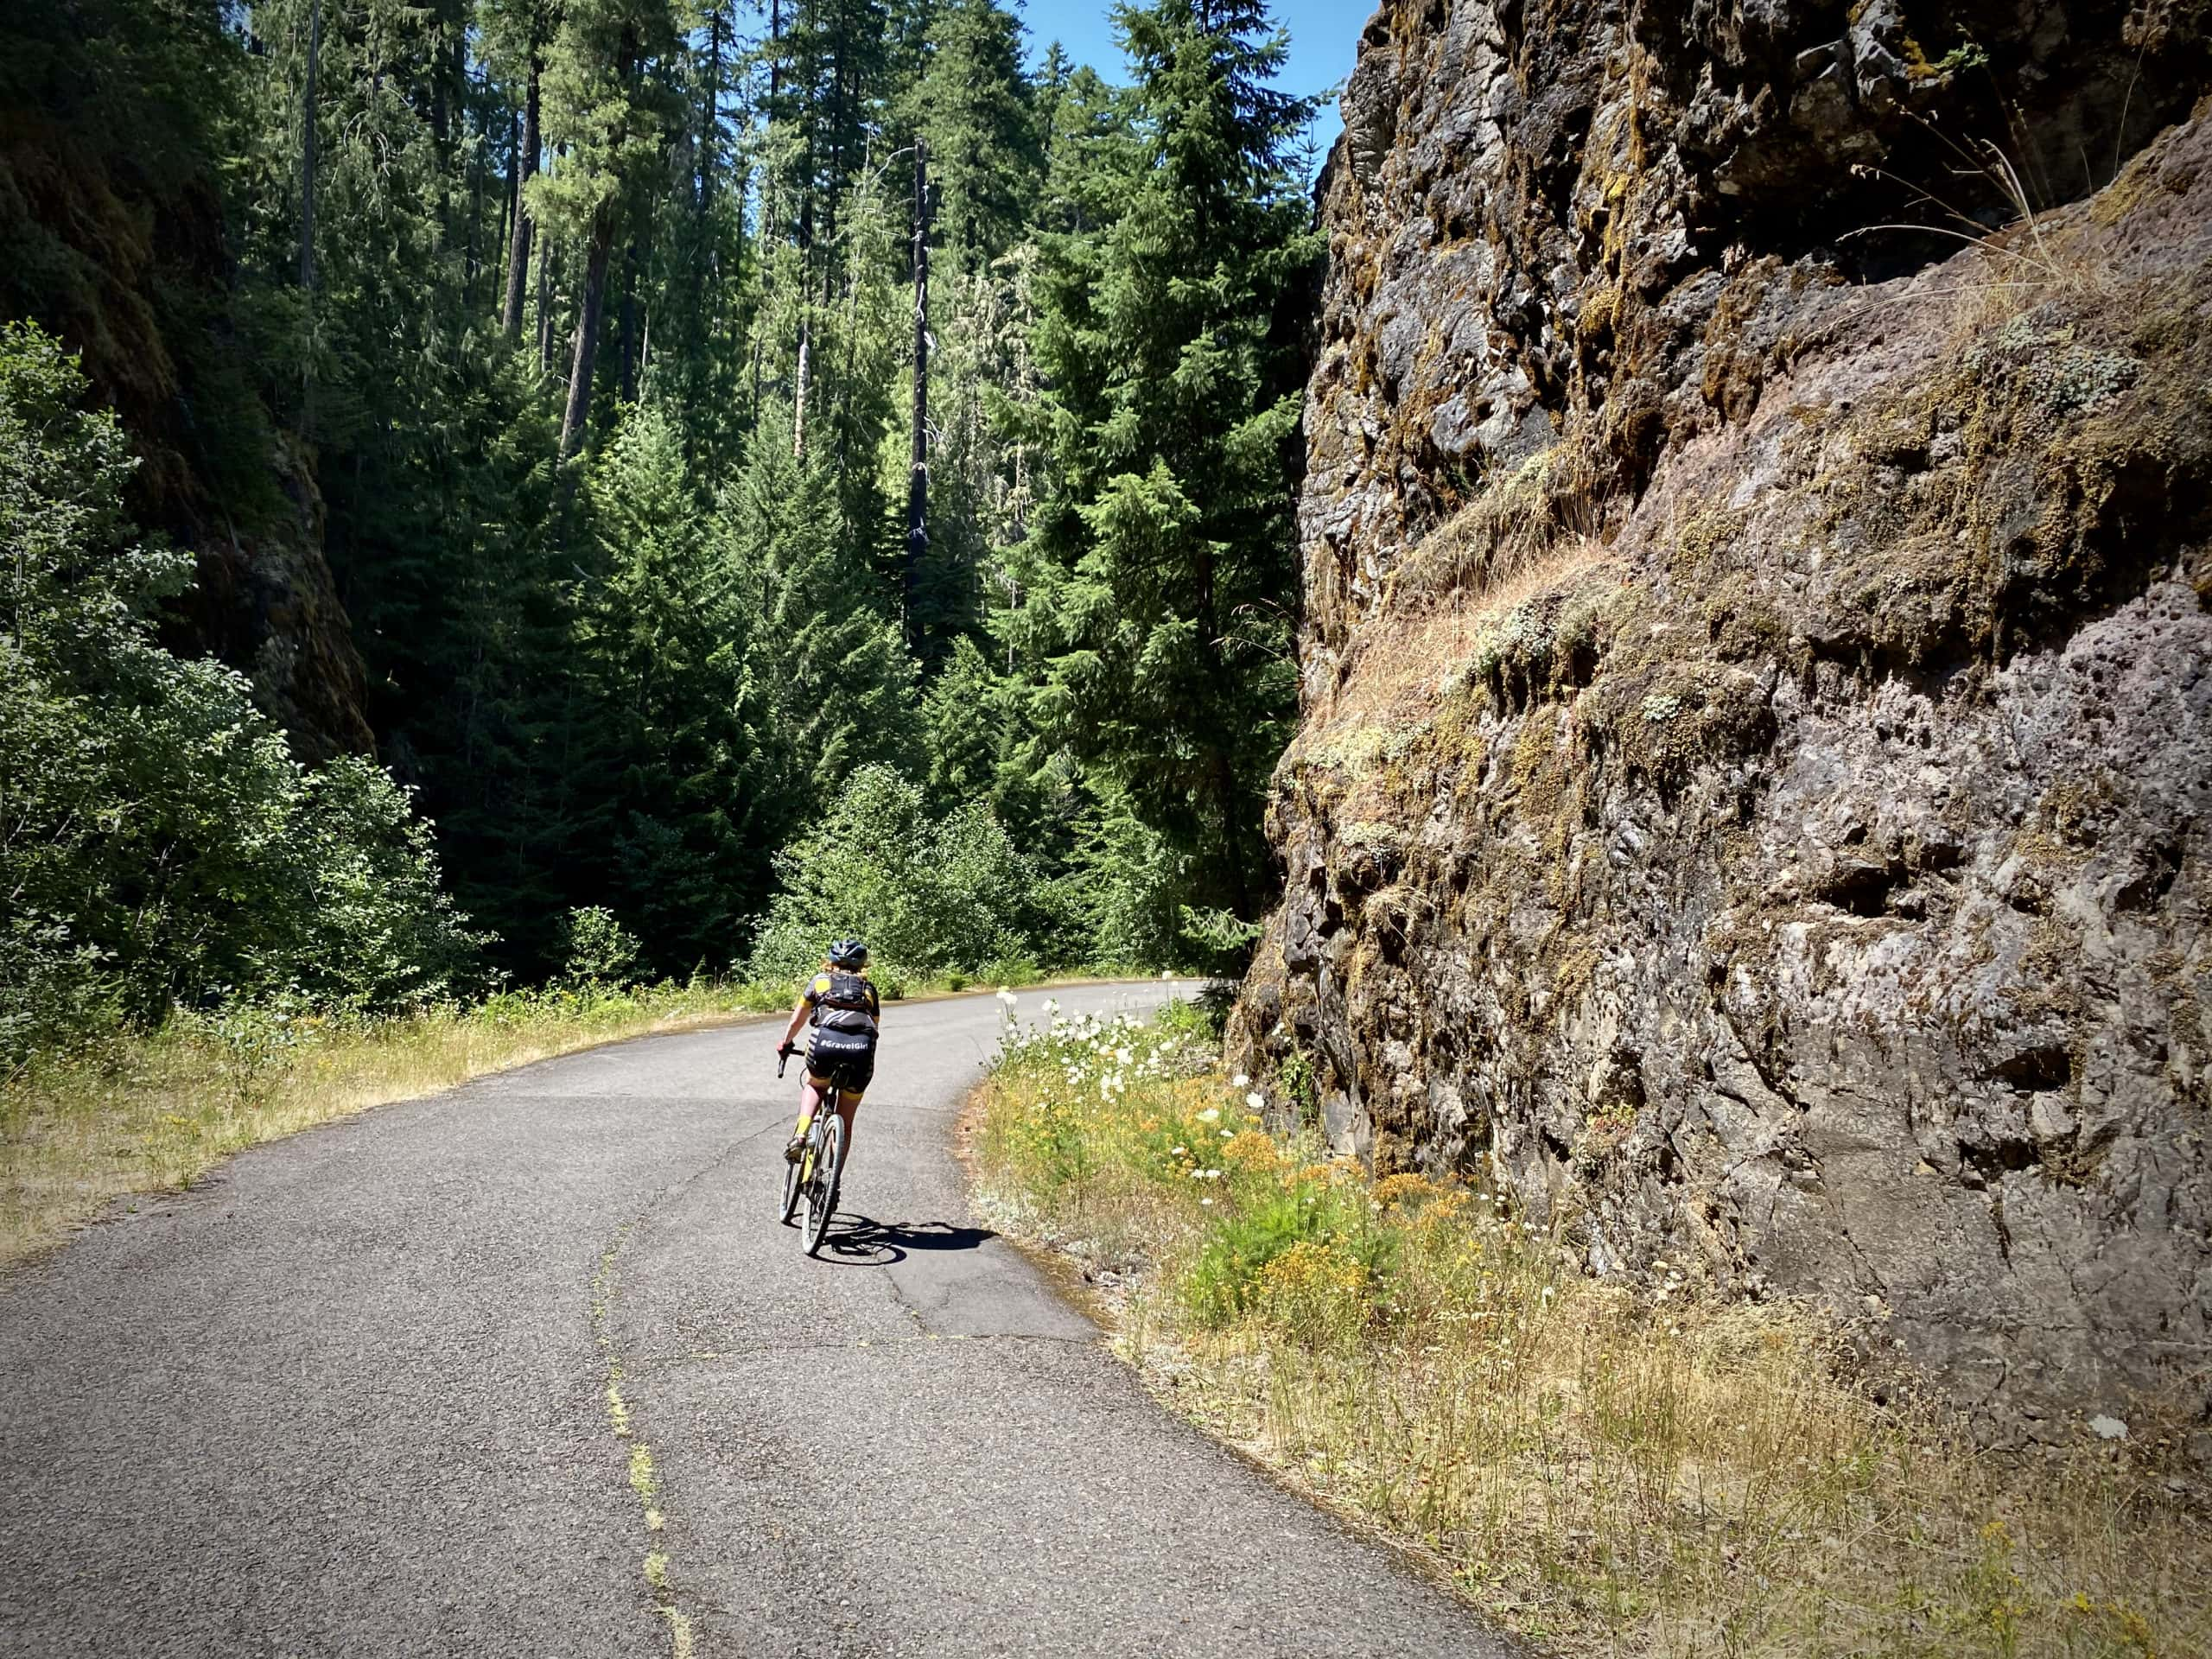 Cyclist on NF 23 going around a right hand corner with rock wall to right. Near Oakridge, Oregon.